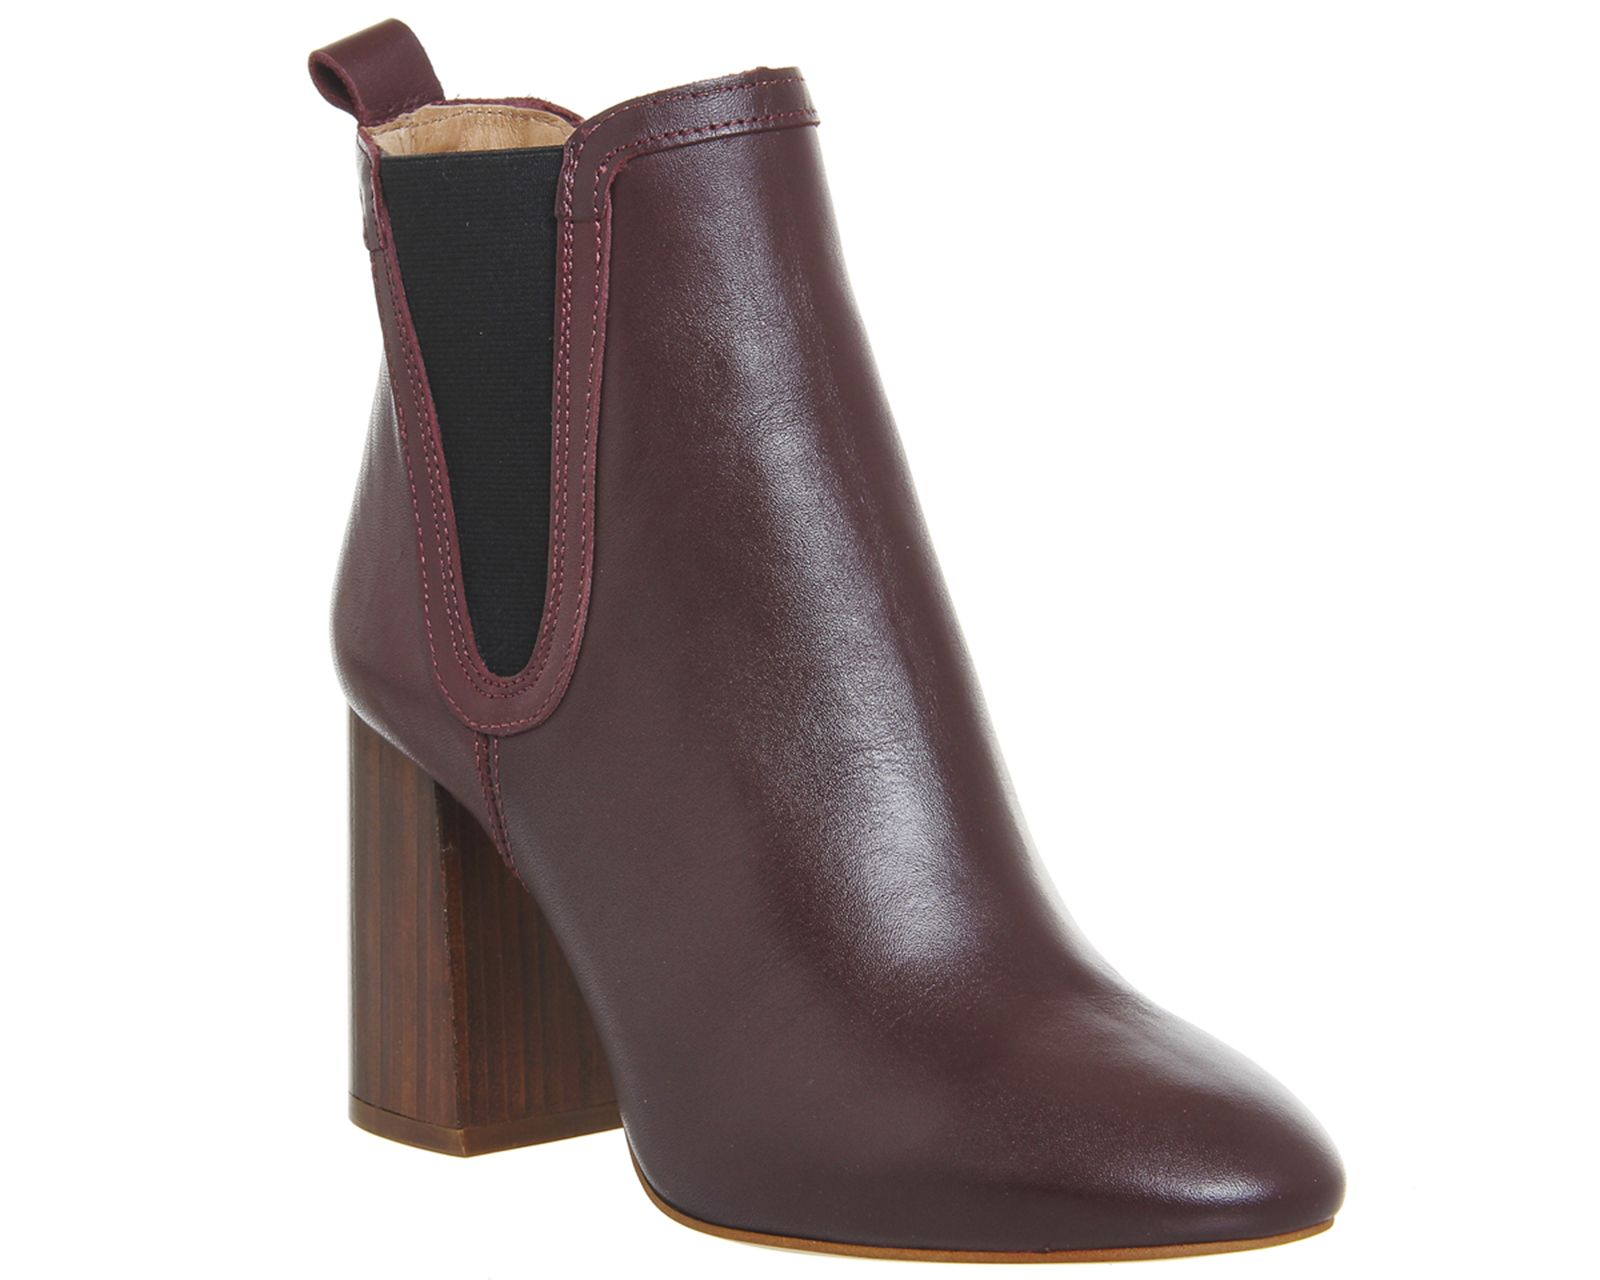 Burgundy Leather Office Lily Pad Chelsea Boots From Co Uk